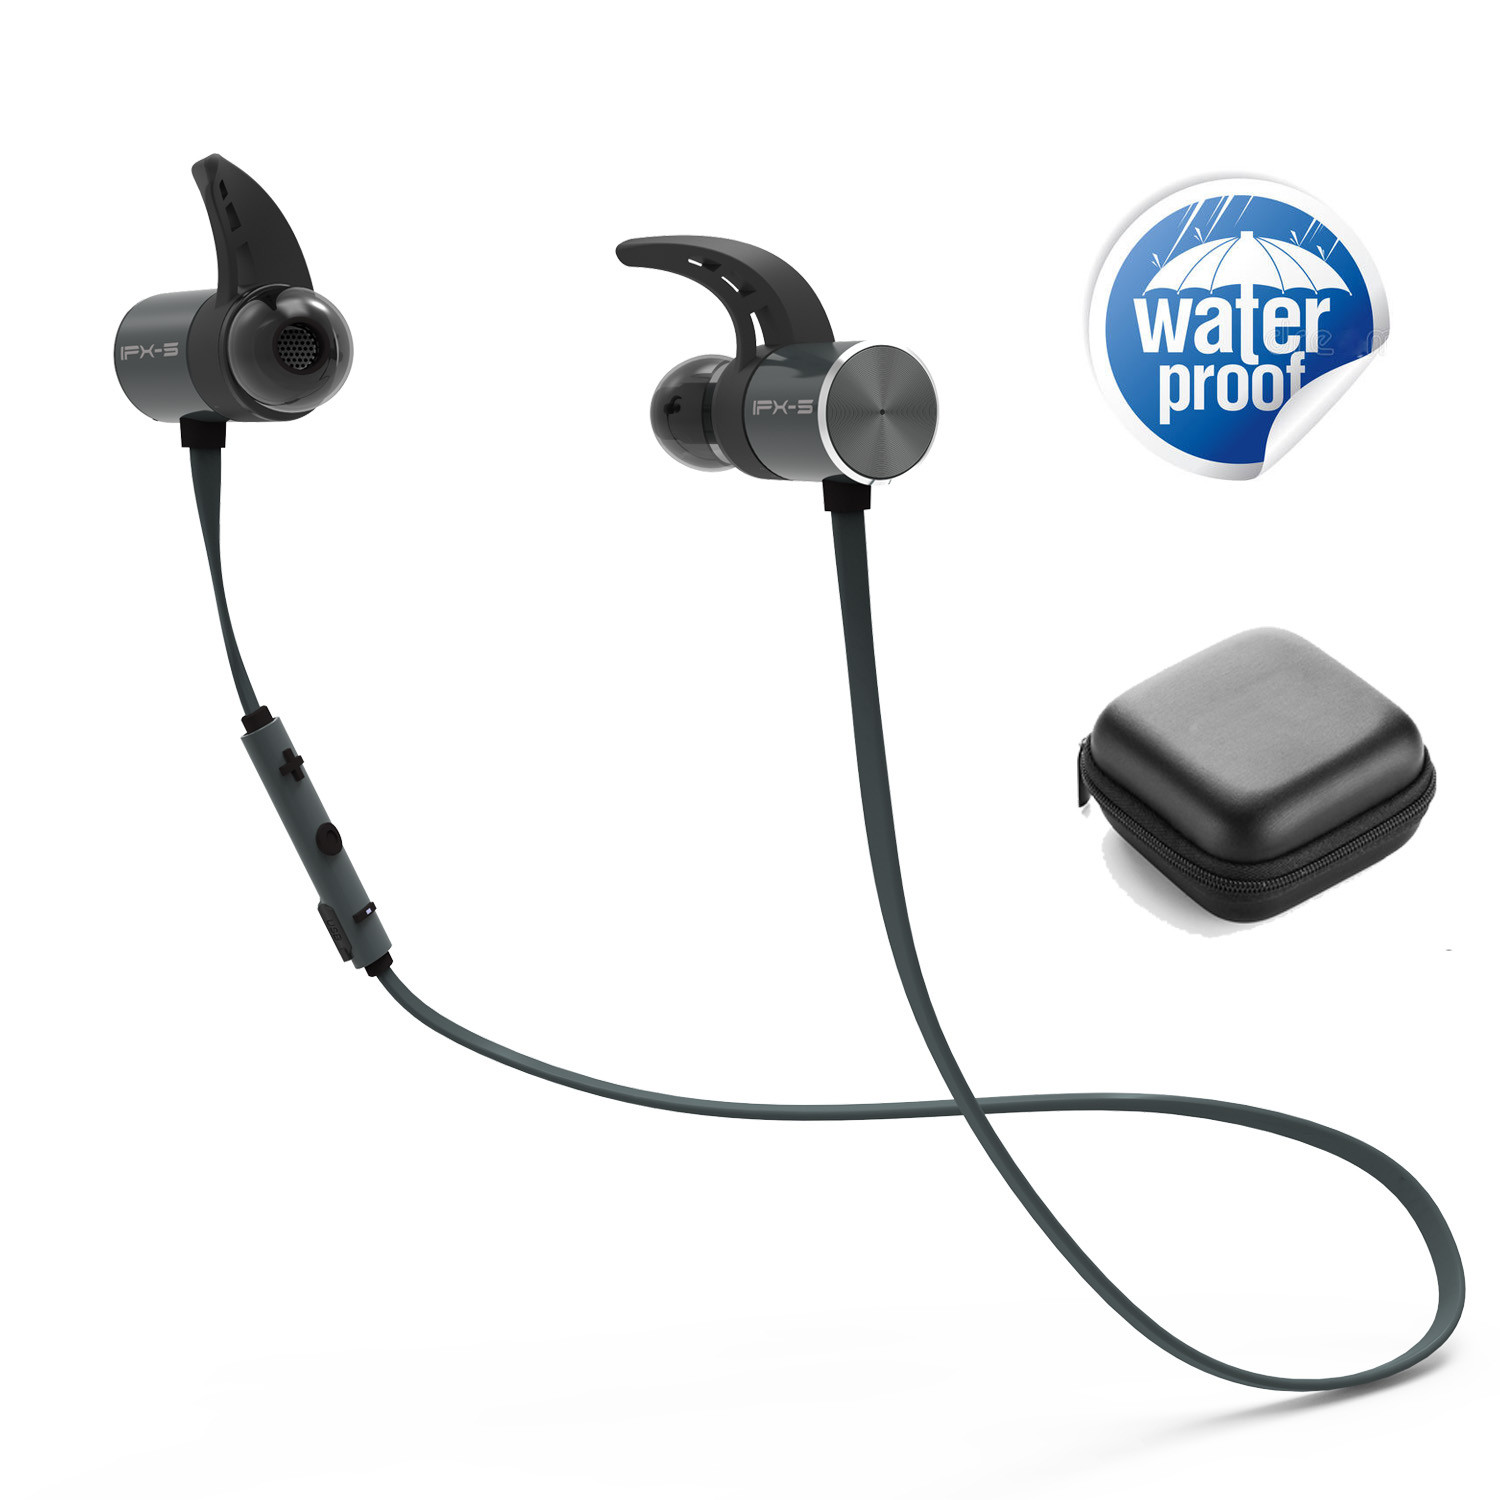 Plextone BX343 Wireless Earphone Bluetooth IPX5 Waterproof Earbuds Magnetic Headset Earphones With Microphone magnetic earbuds wireless bluetooth headset support nfc pairing two devices at one time